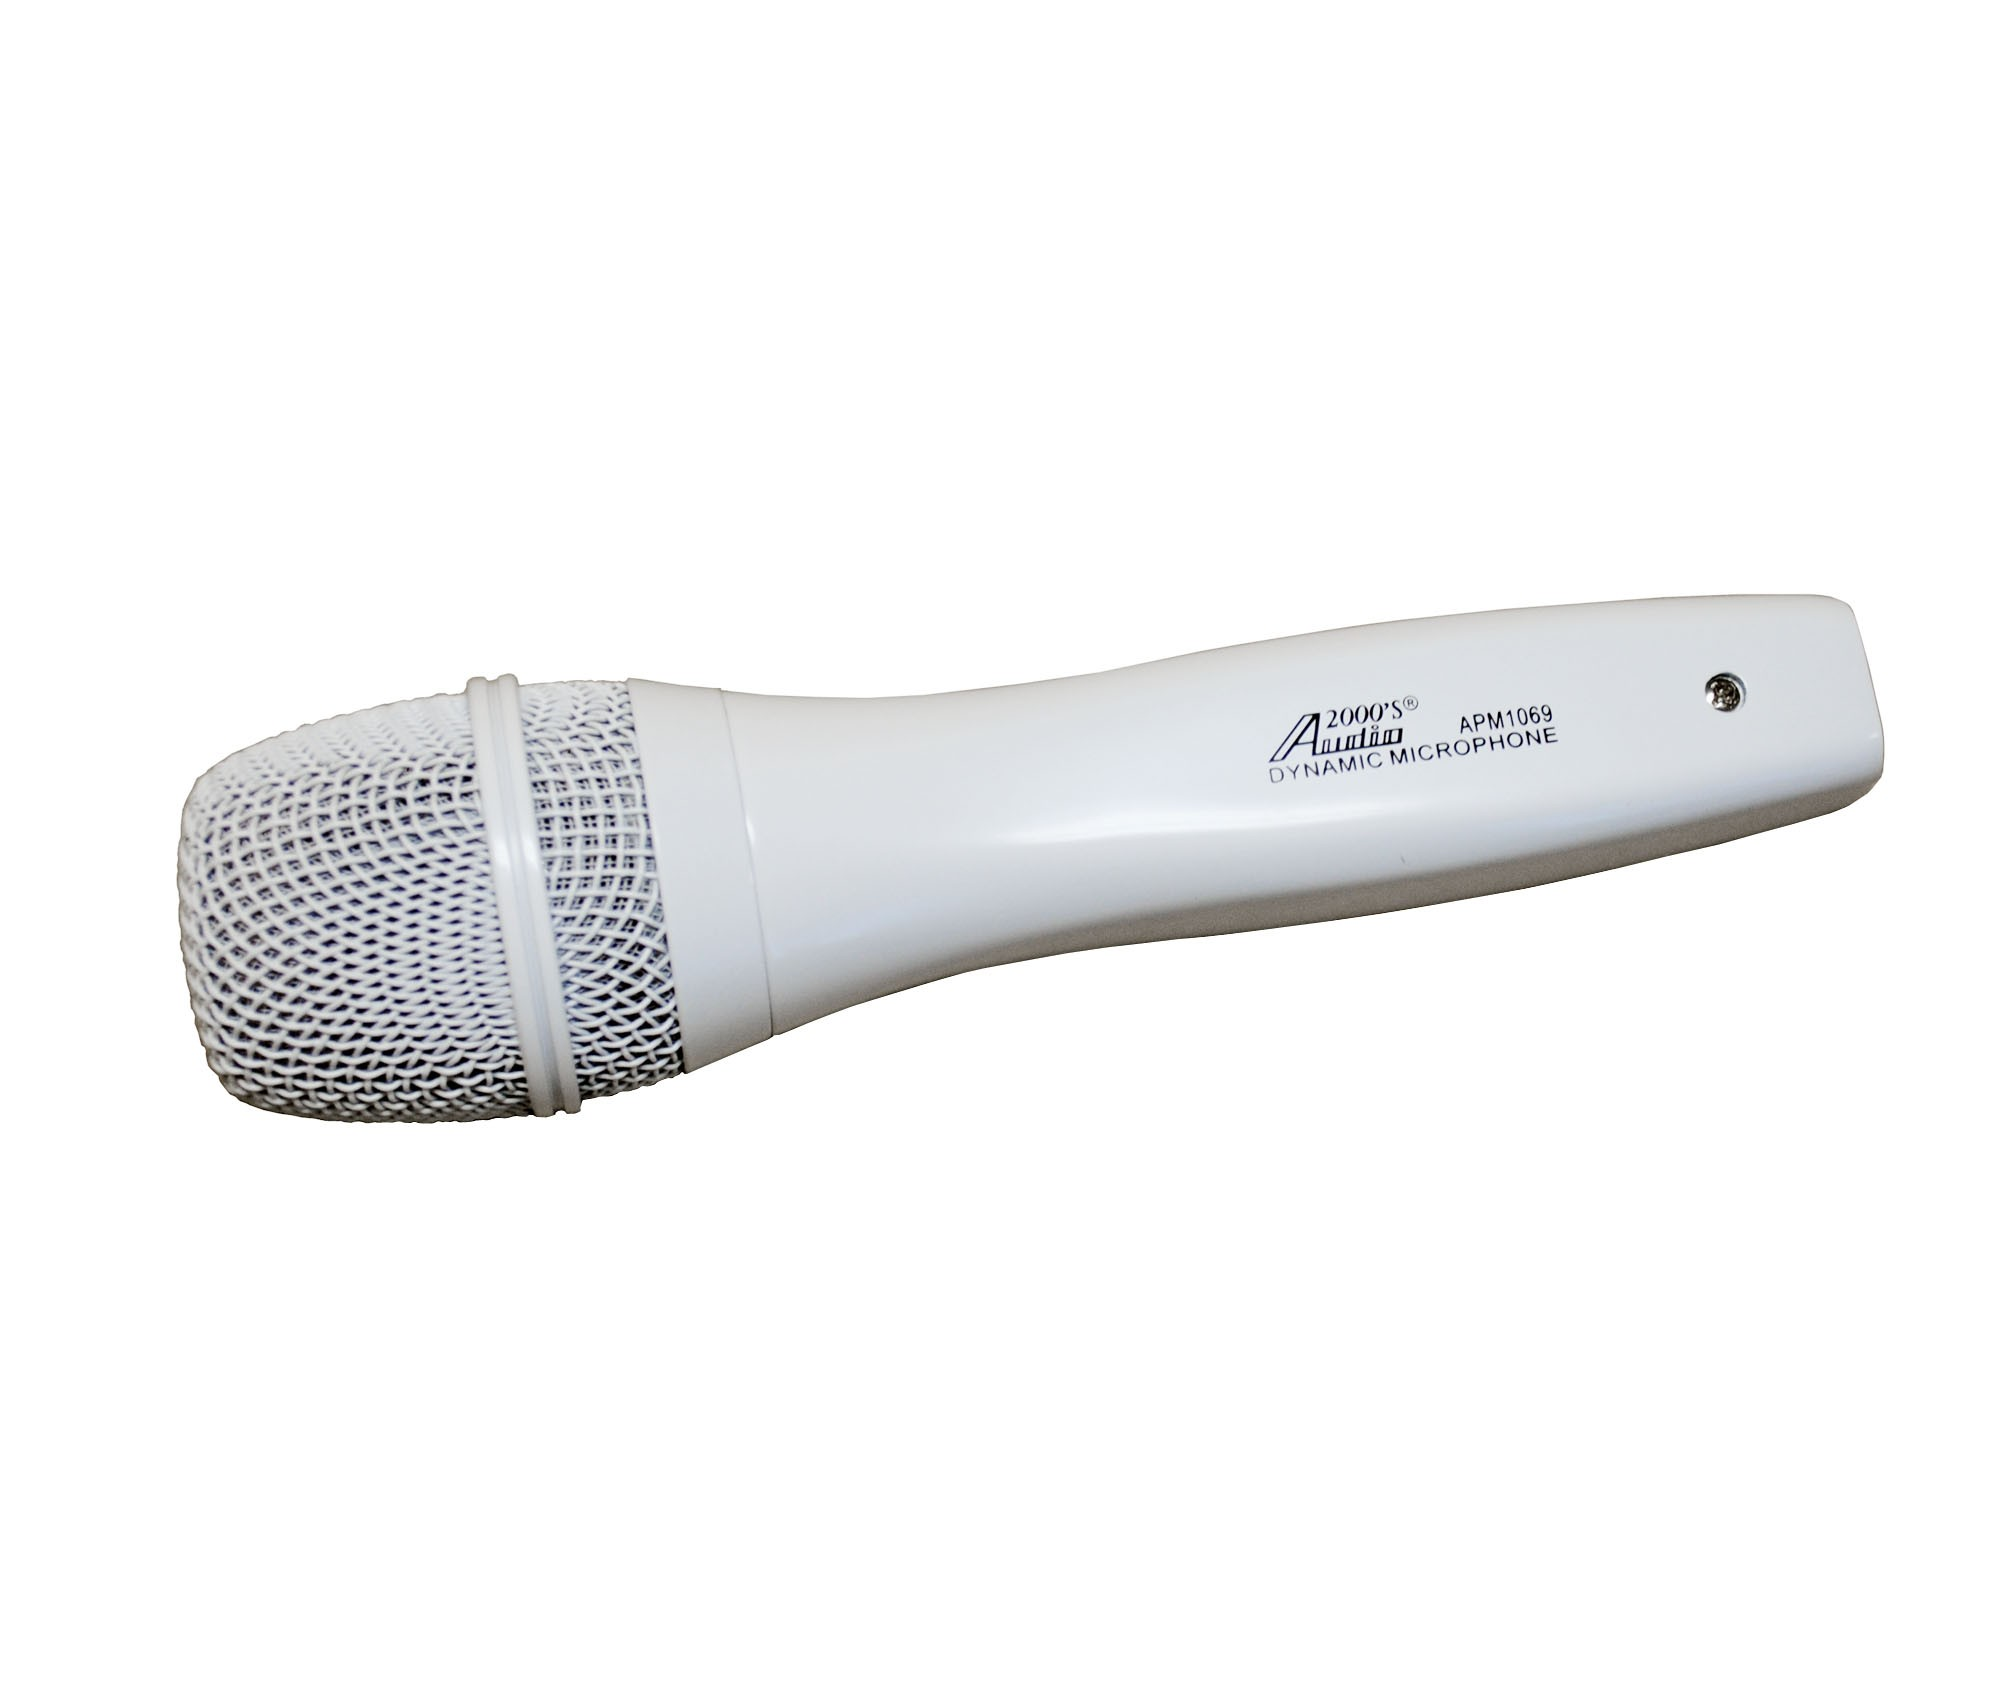 Audio2000 APM1069 Dynamic White Microphone with Clips by